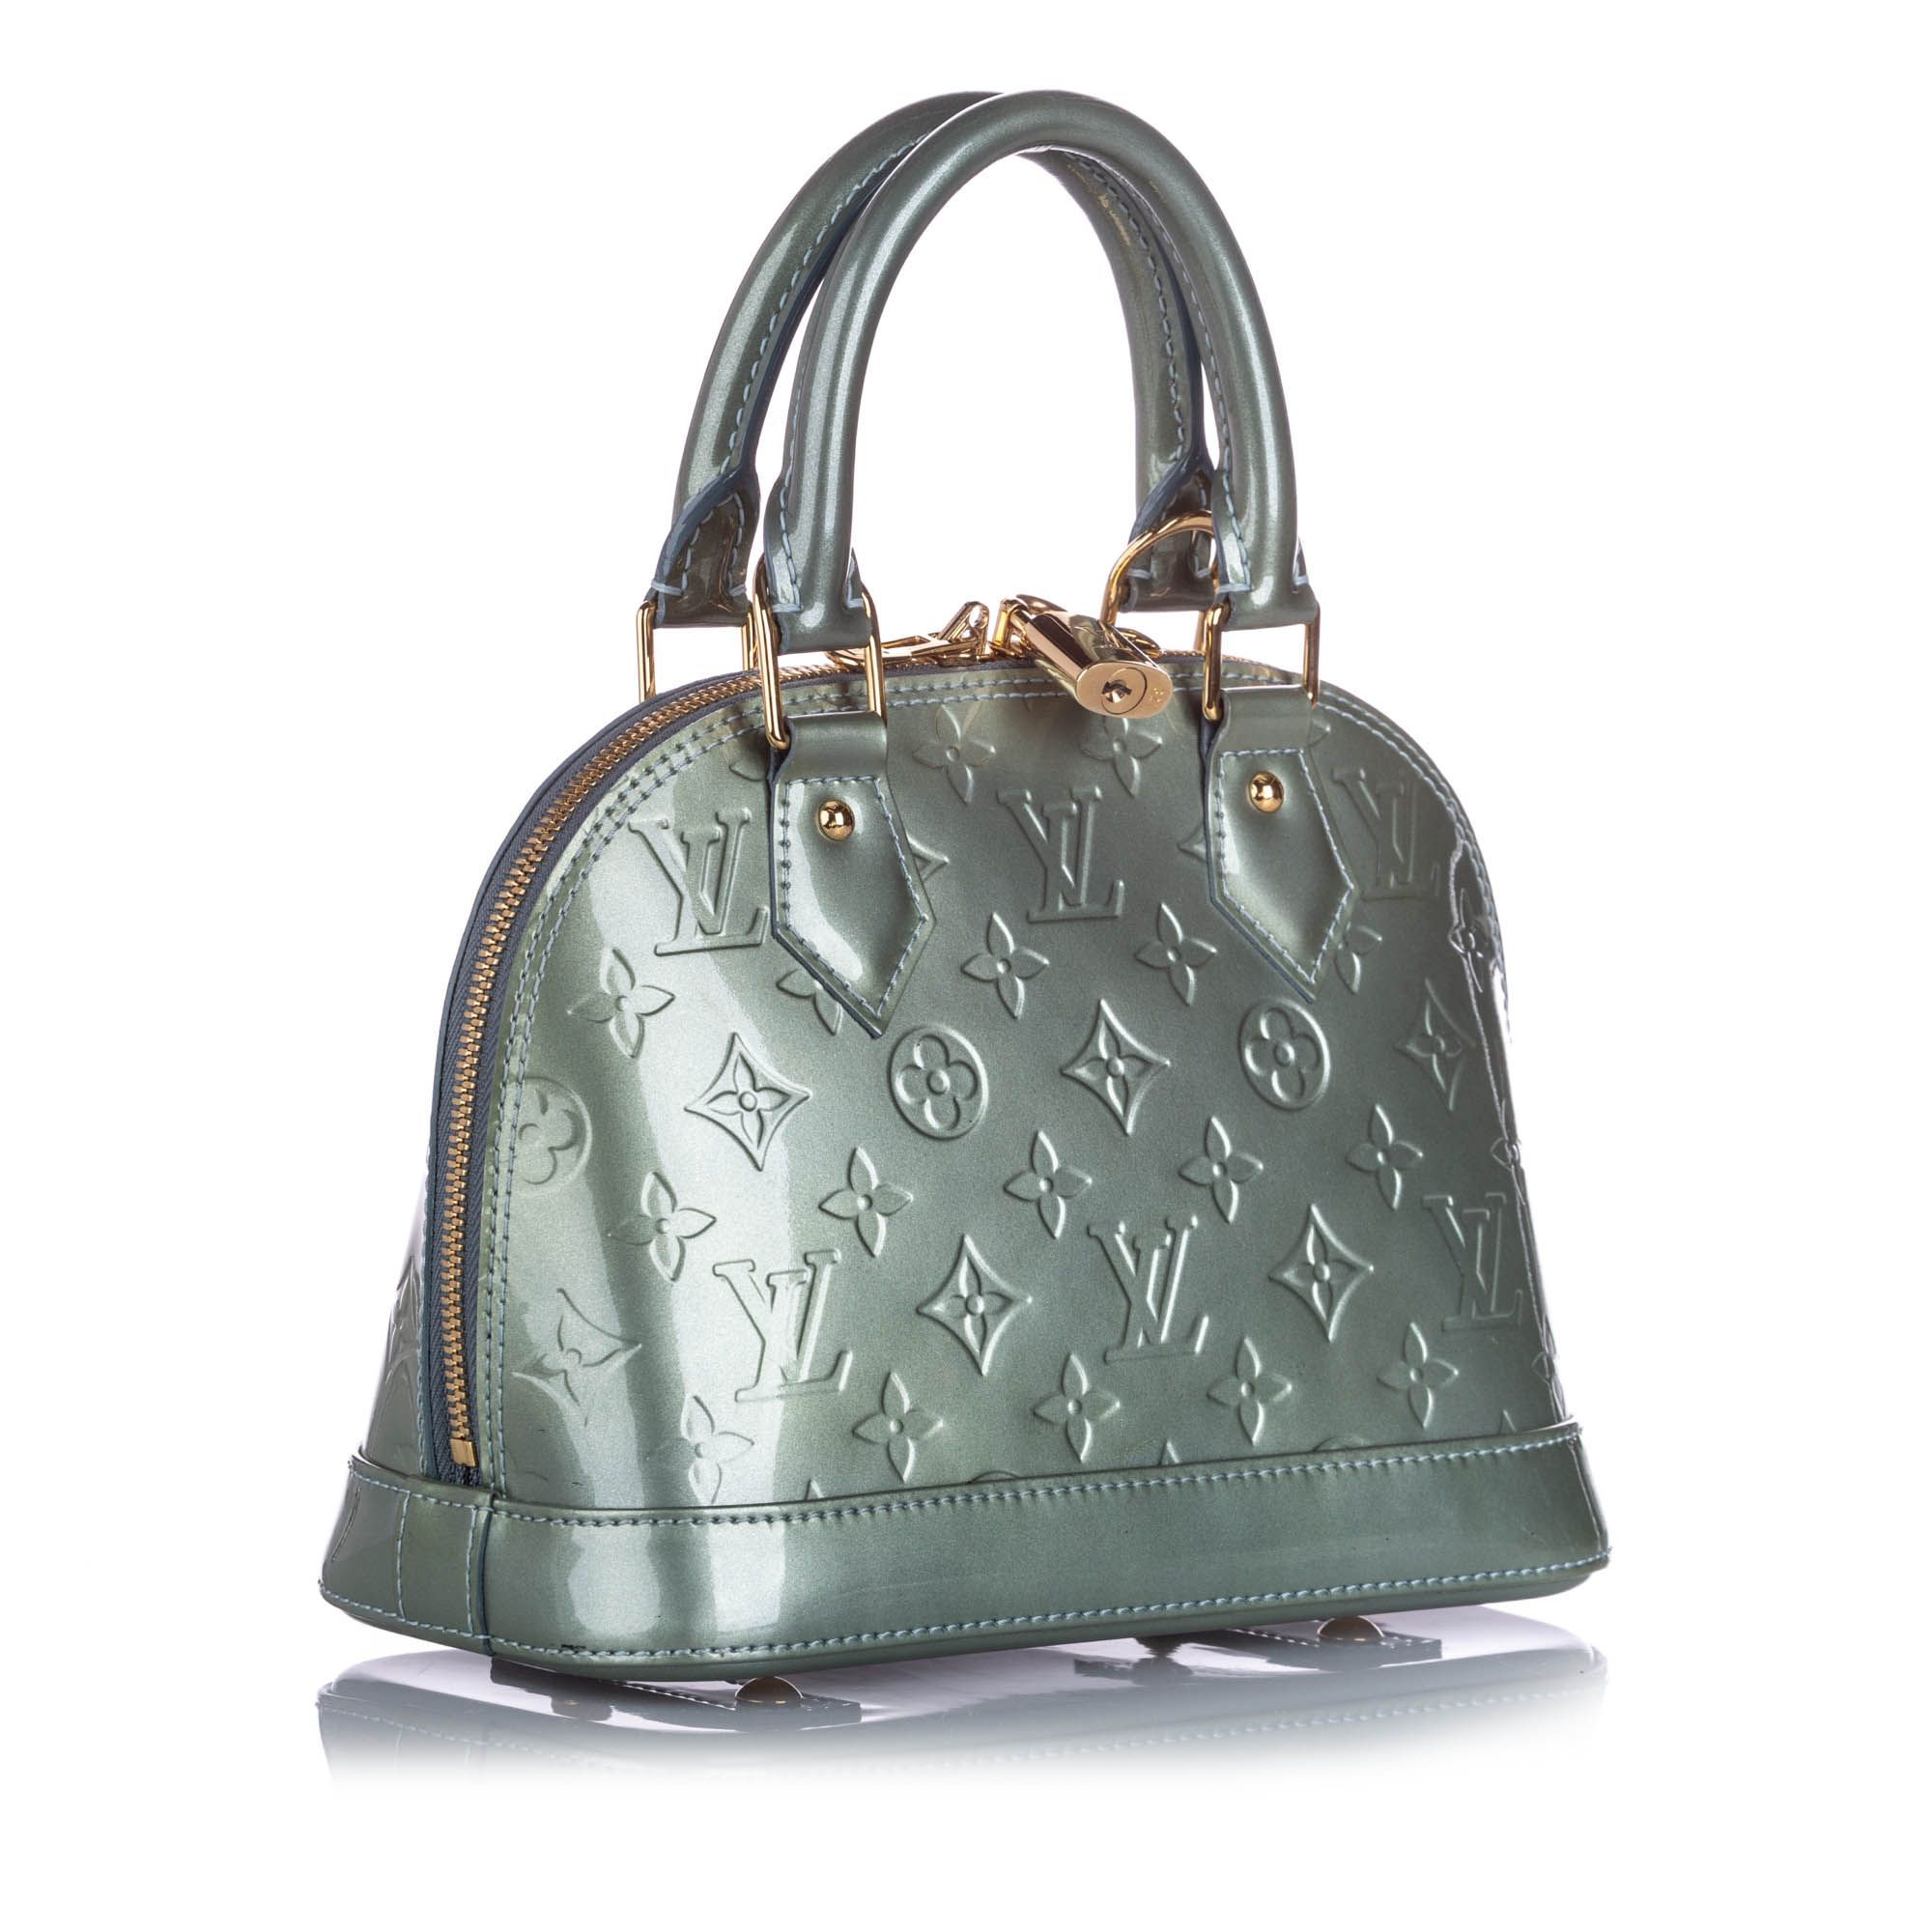 Vintage Louis Vuitton Vernis Alma BB with Strap Gray